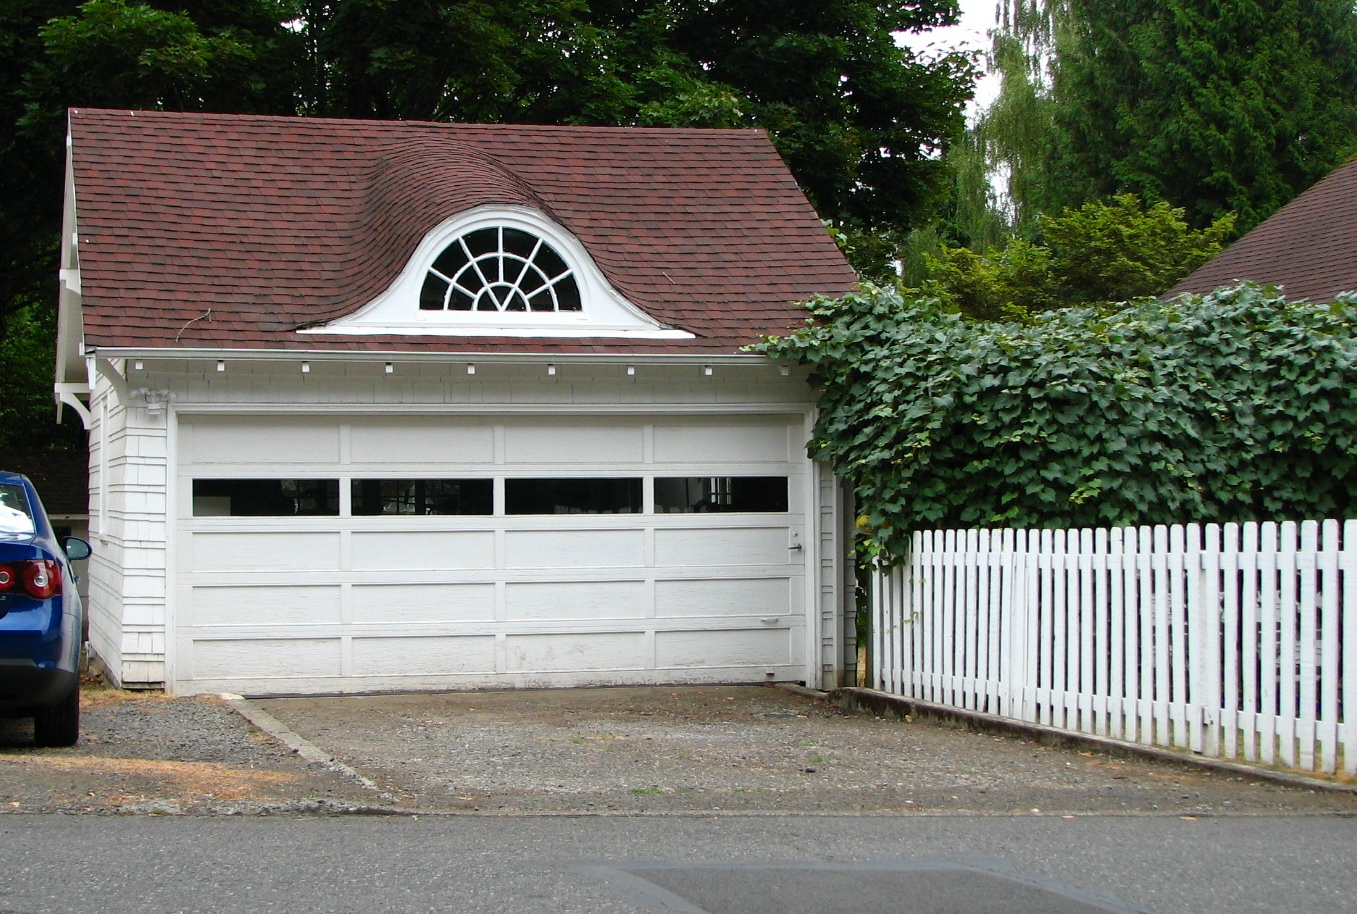 Learn how to keep your garage organised with our top tips! Source: https://www.cdcgaragedoors.co.uk/assets/Hughes_House_garage_-_Gresham_Oregon.jpg